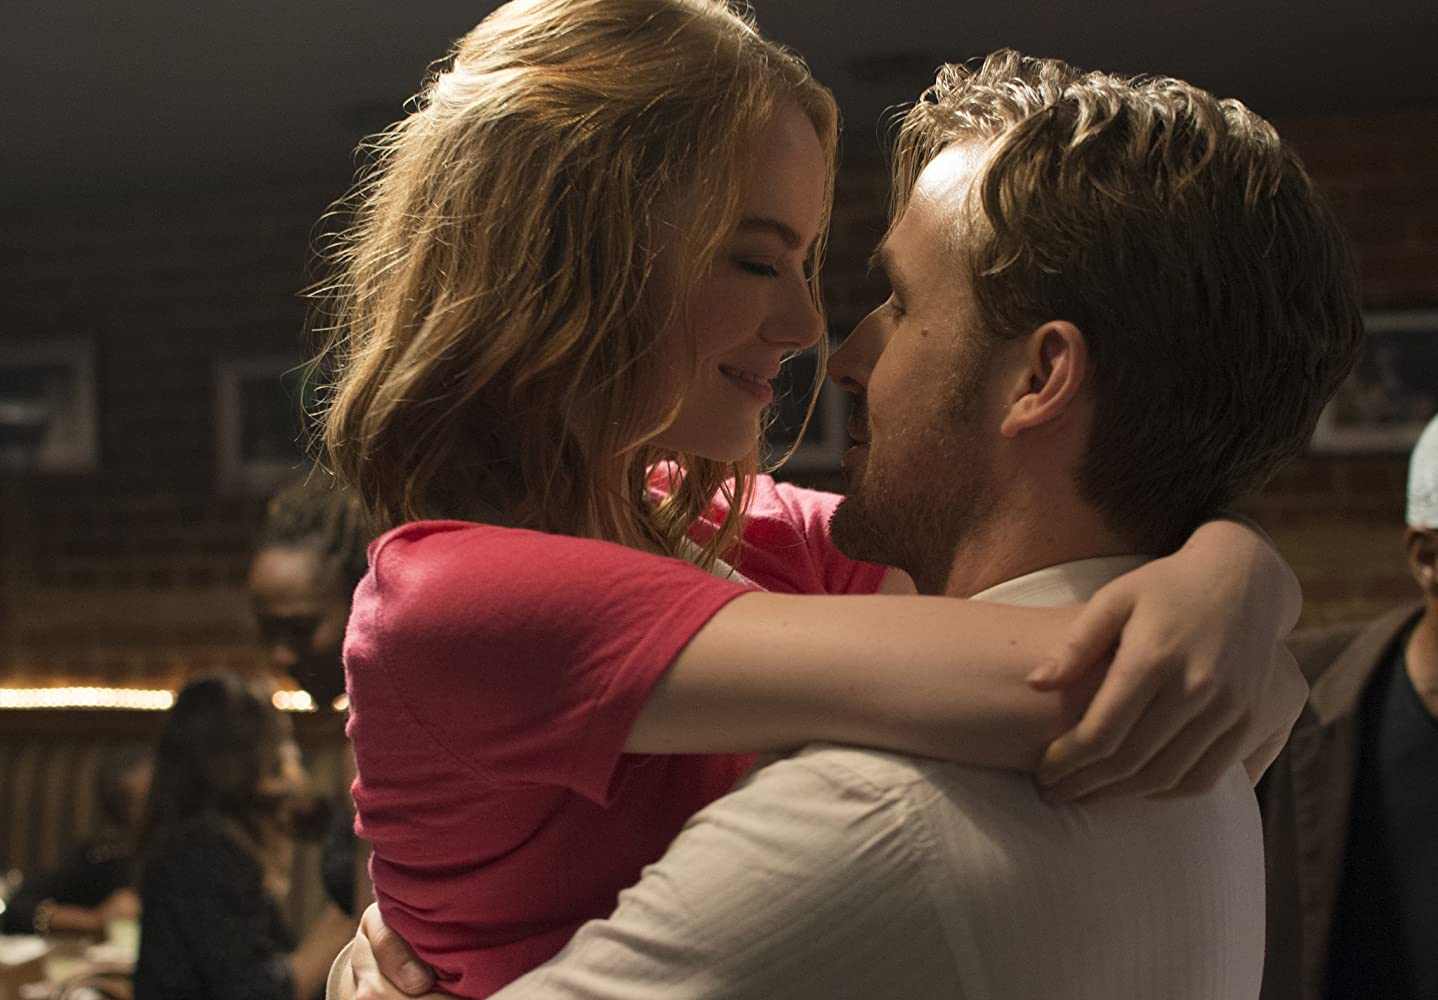 Emma Stone and Ryan Gosling in 'La La Land' (Courtesy: Lionsgate)